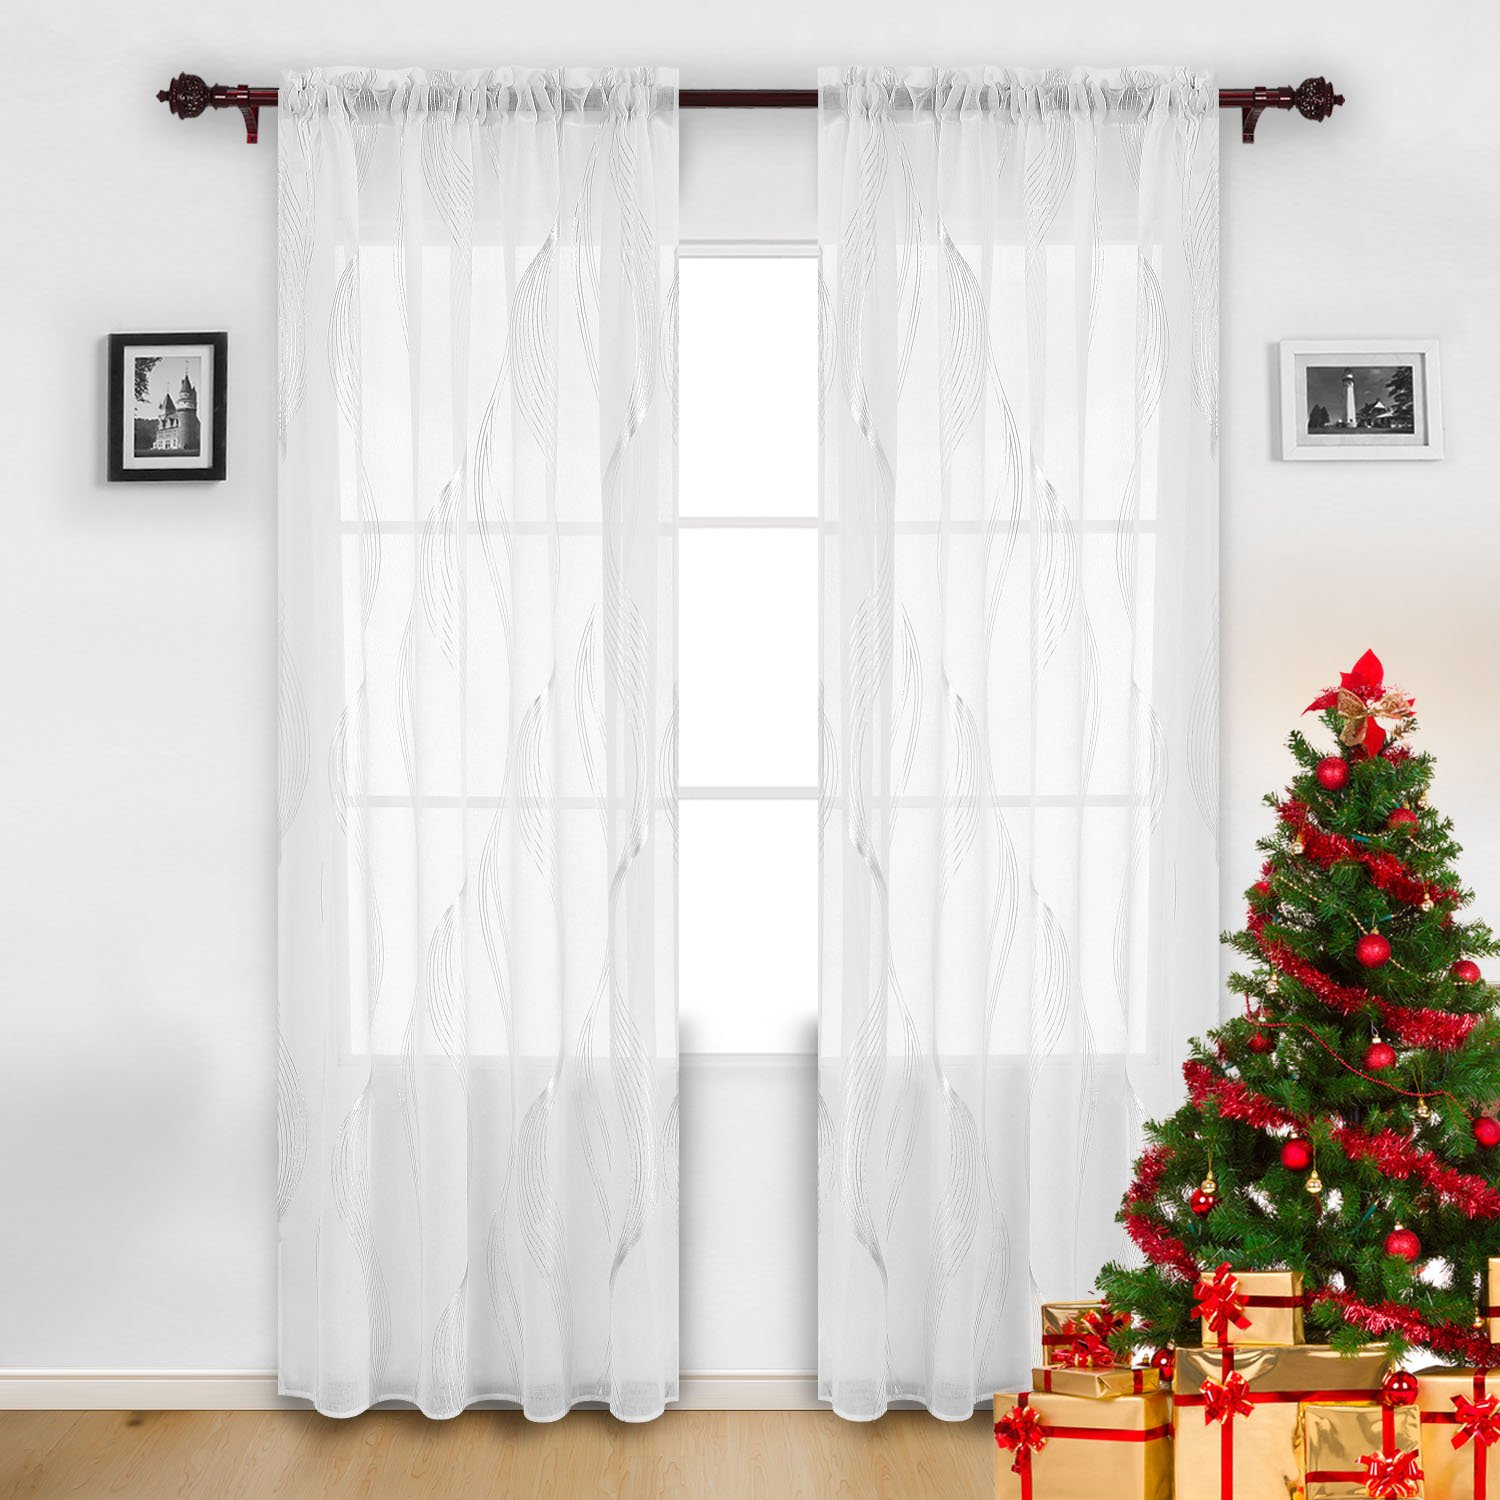 black drapes price amazon blackout striped boch awning half white curtain dp kitchen home stripe curtains com